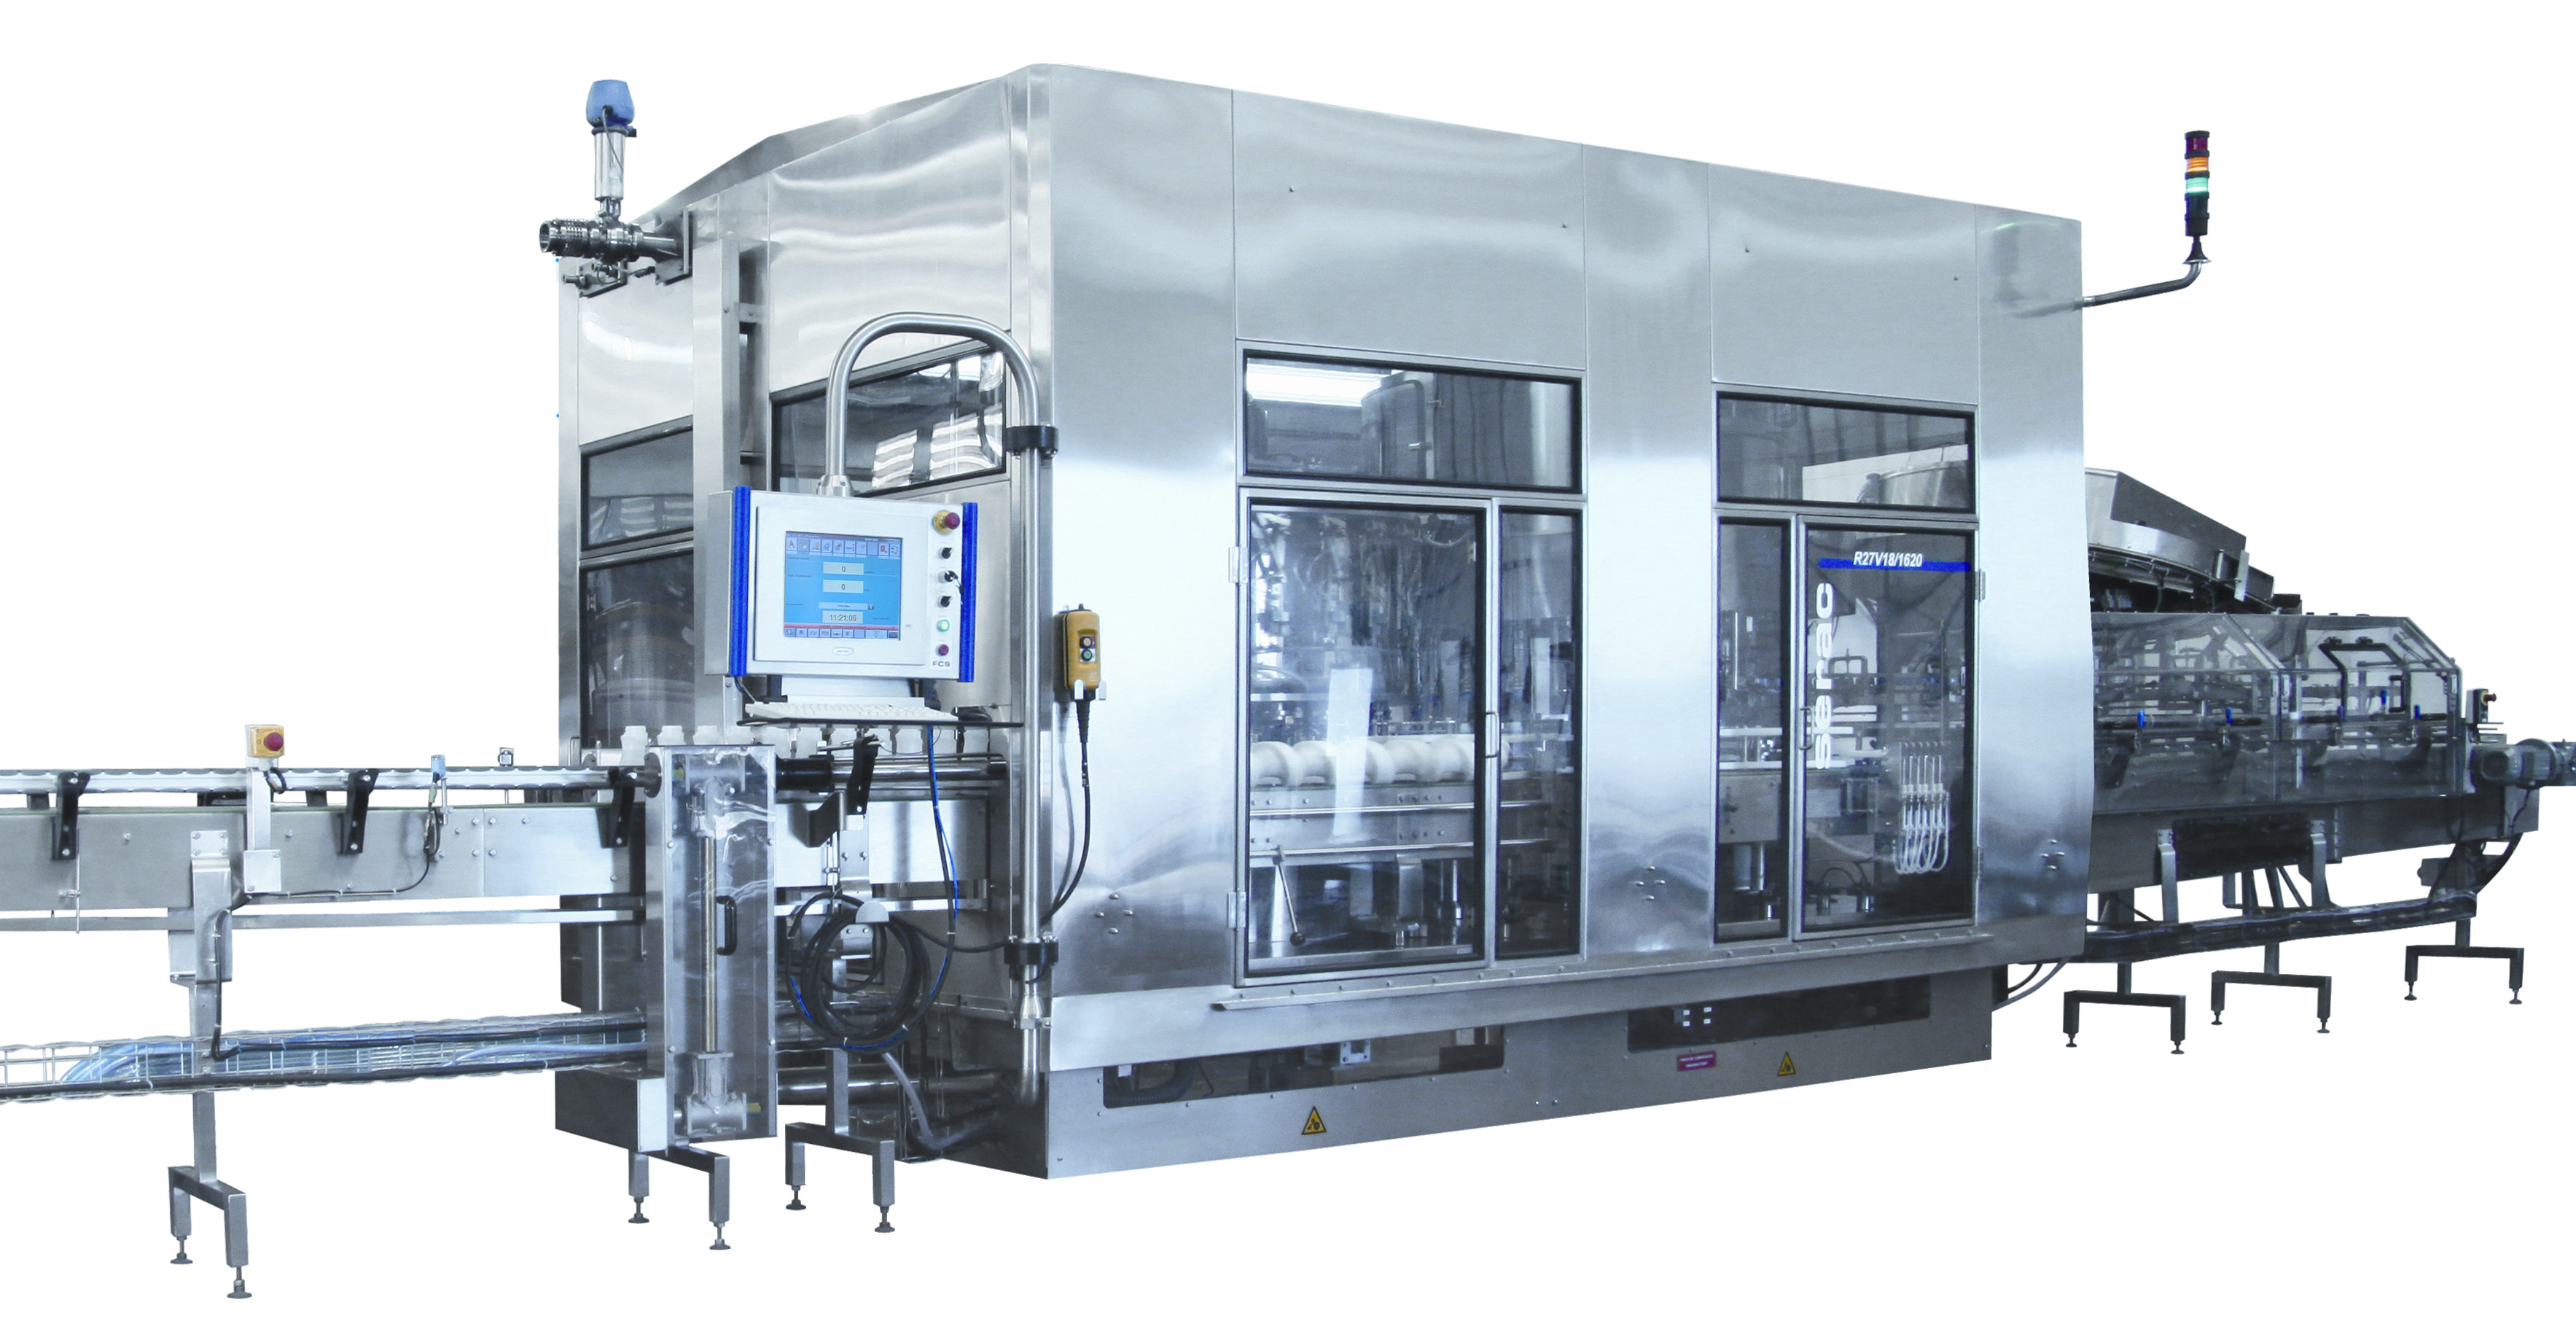 As a standard, the machines are built completely in stainless steel (or adapted materials such as titanium or hastelloy)